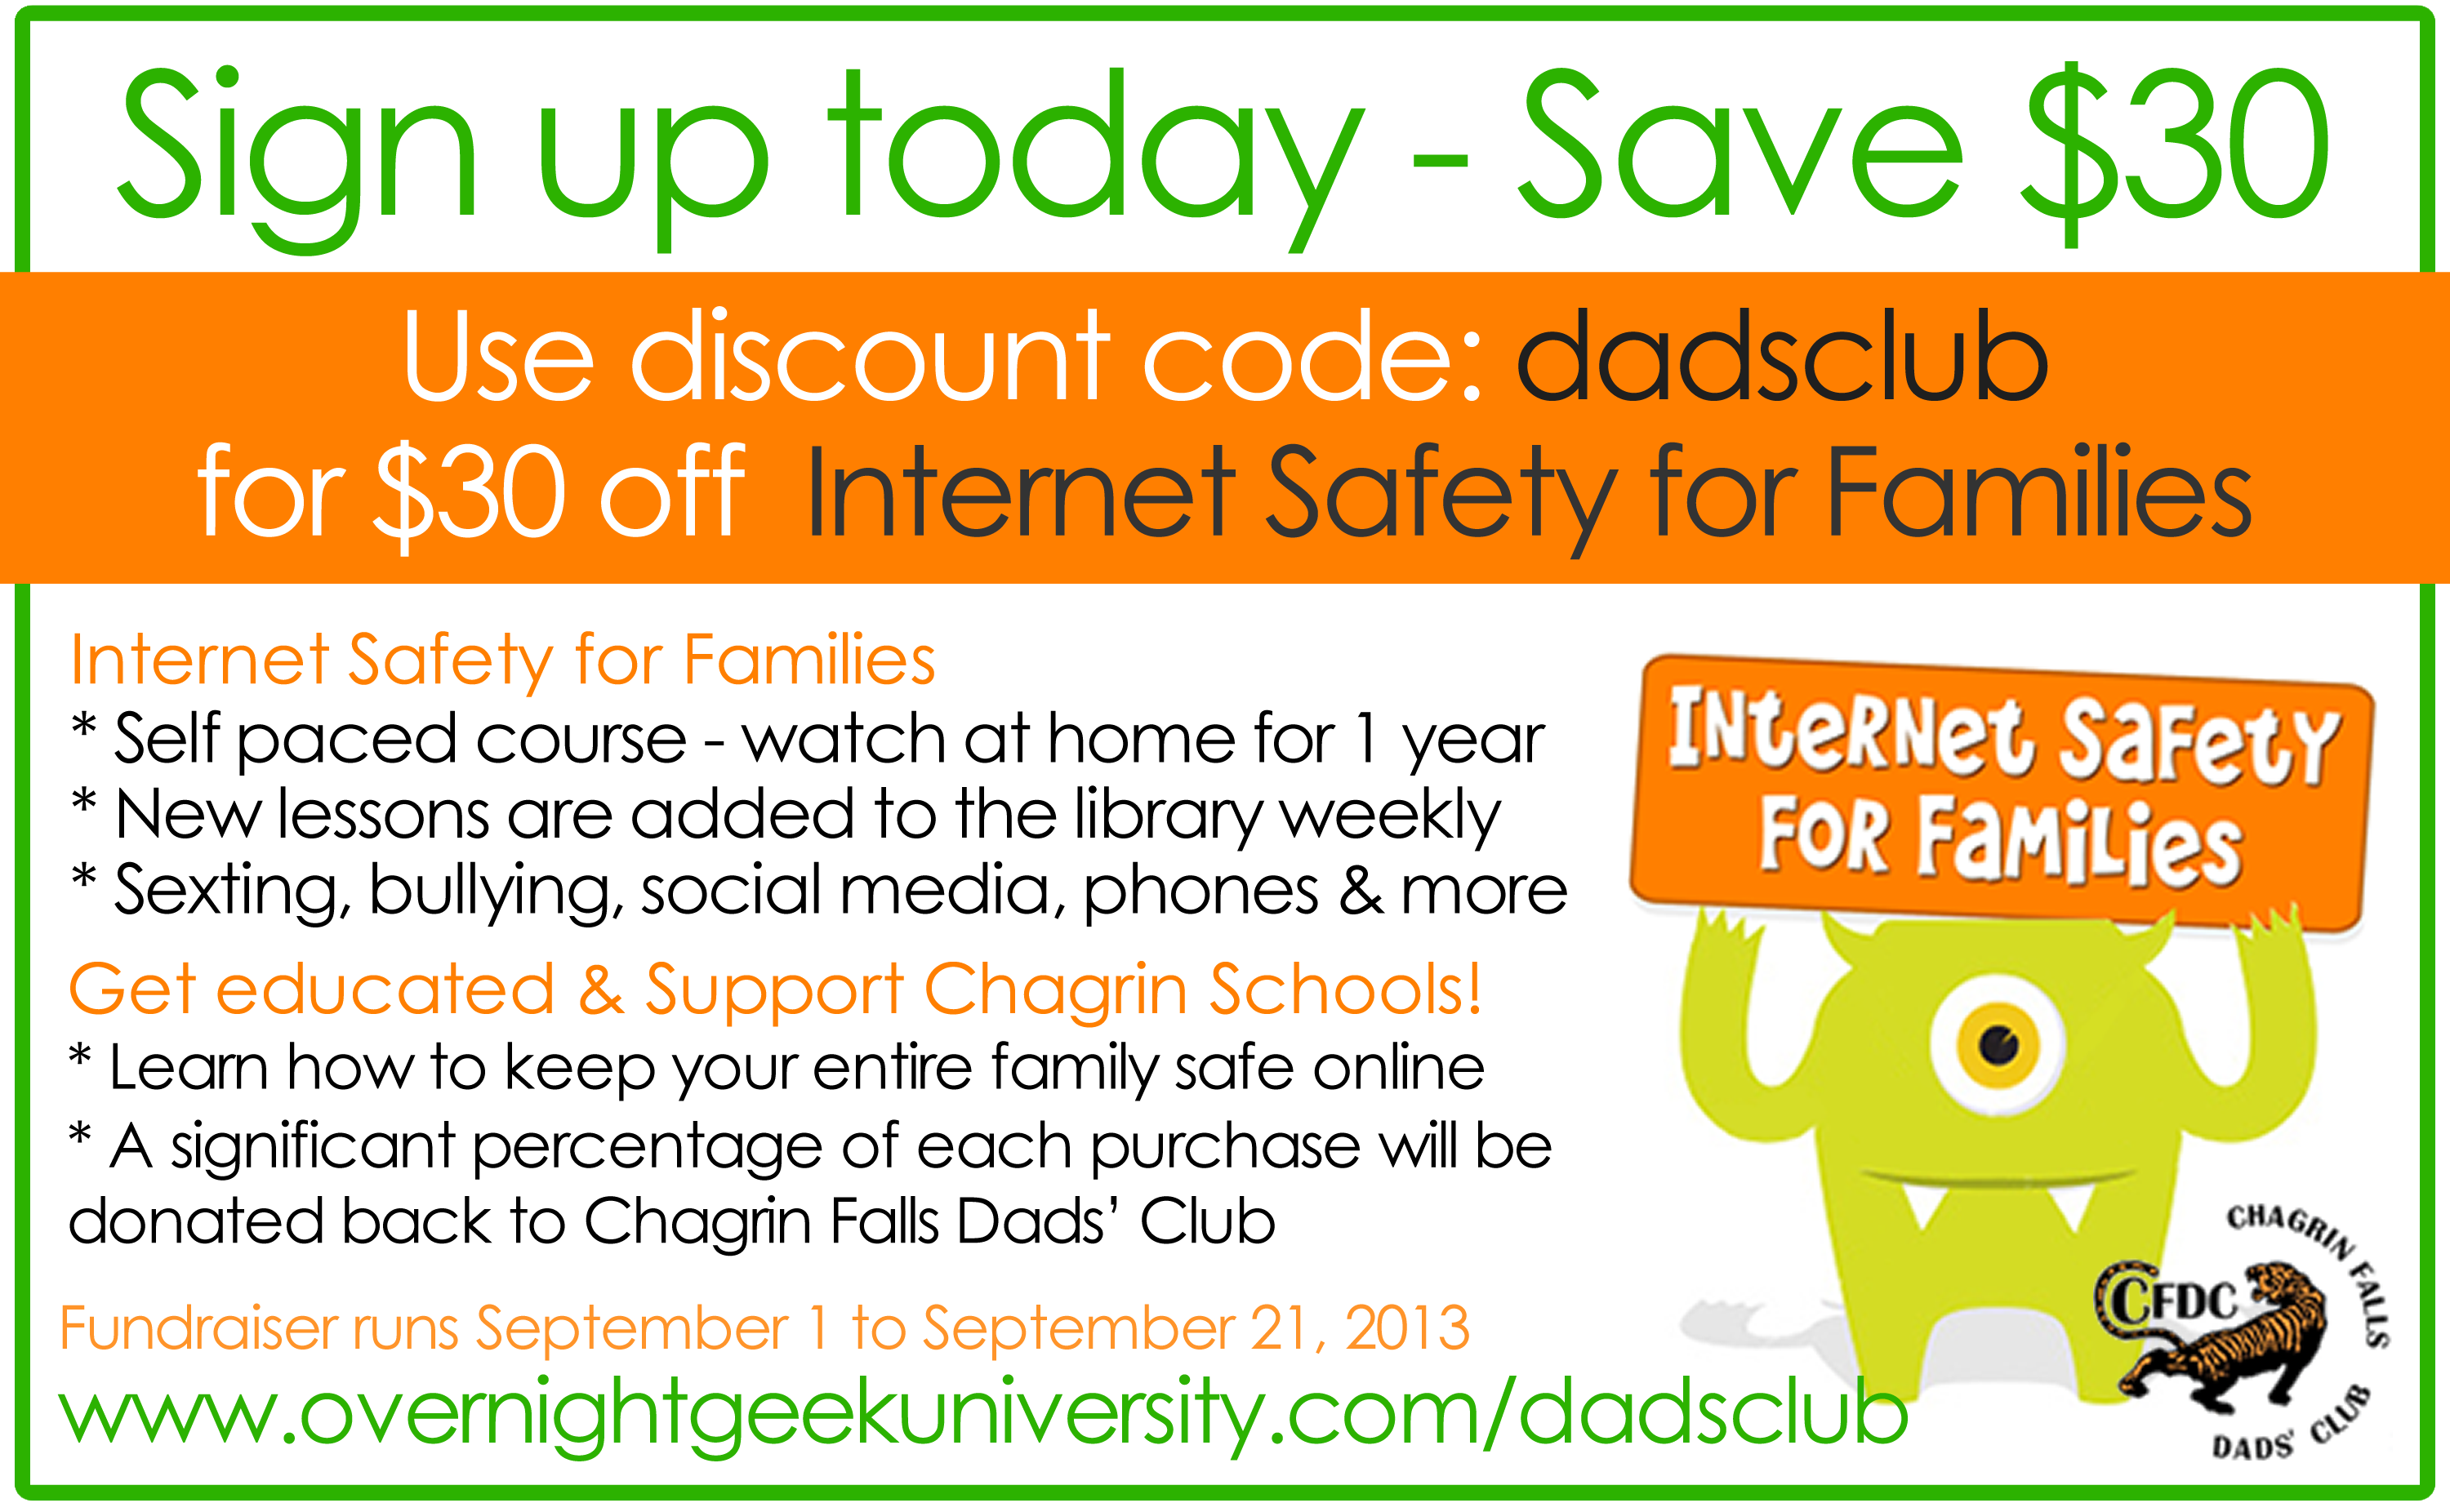 Internet Safety for Families - Online Course